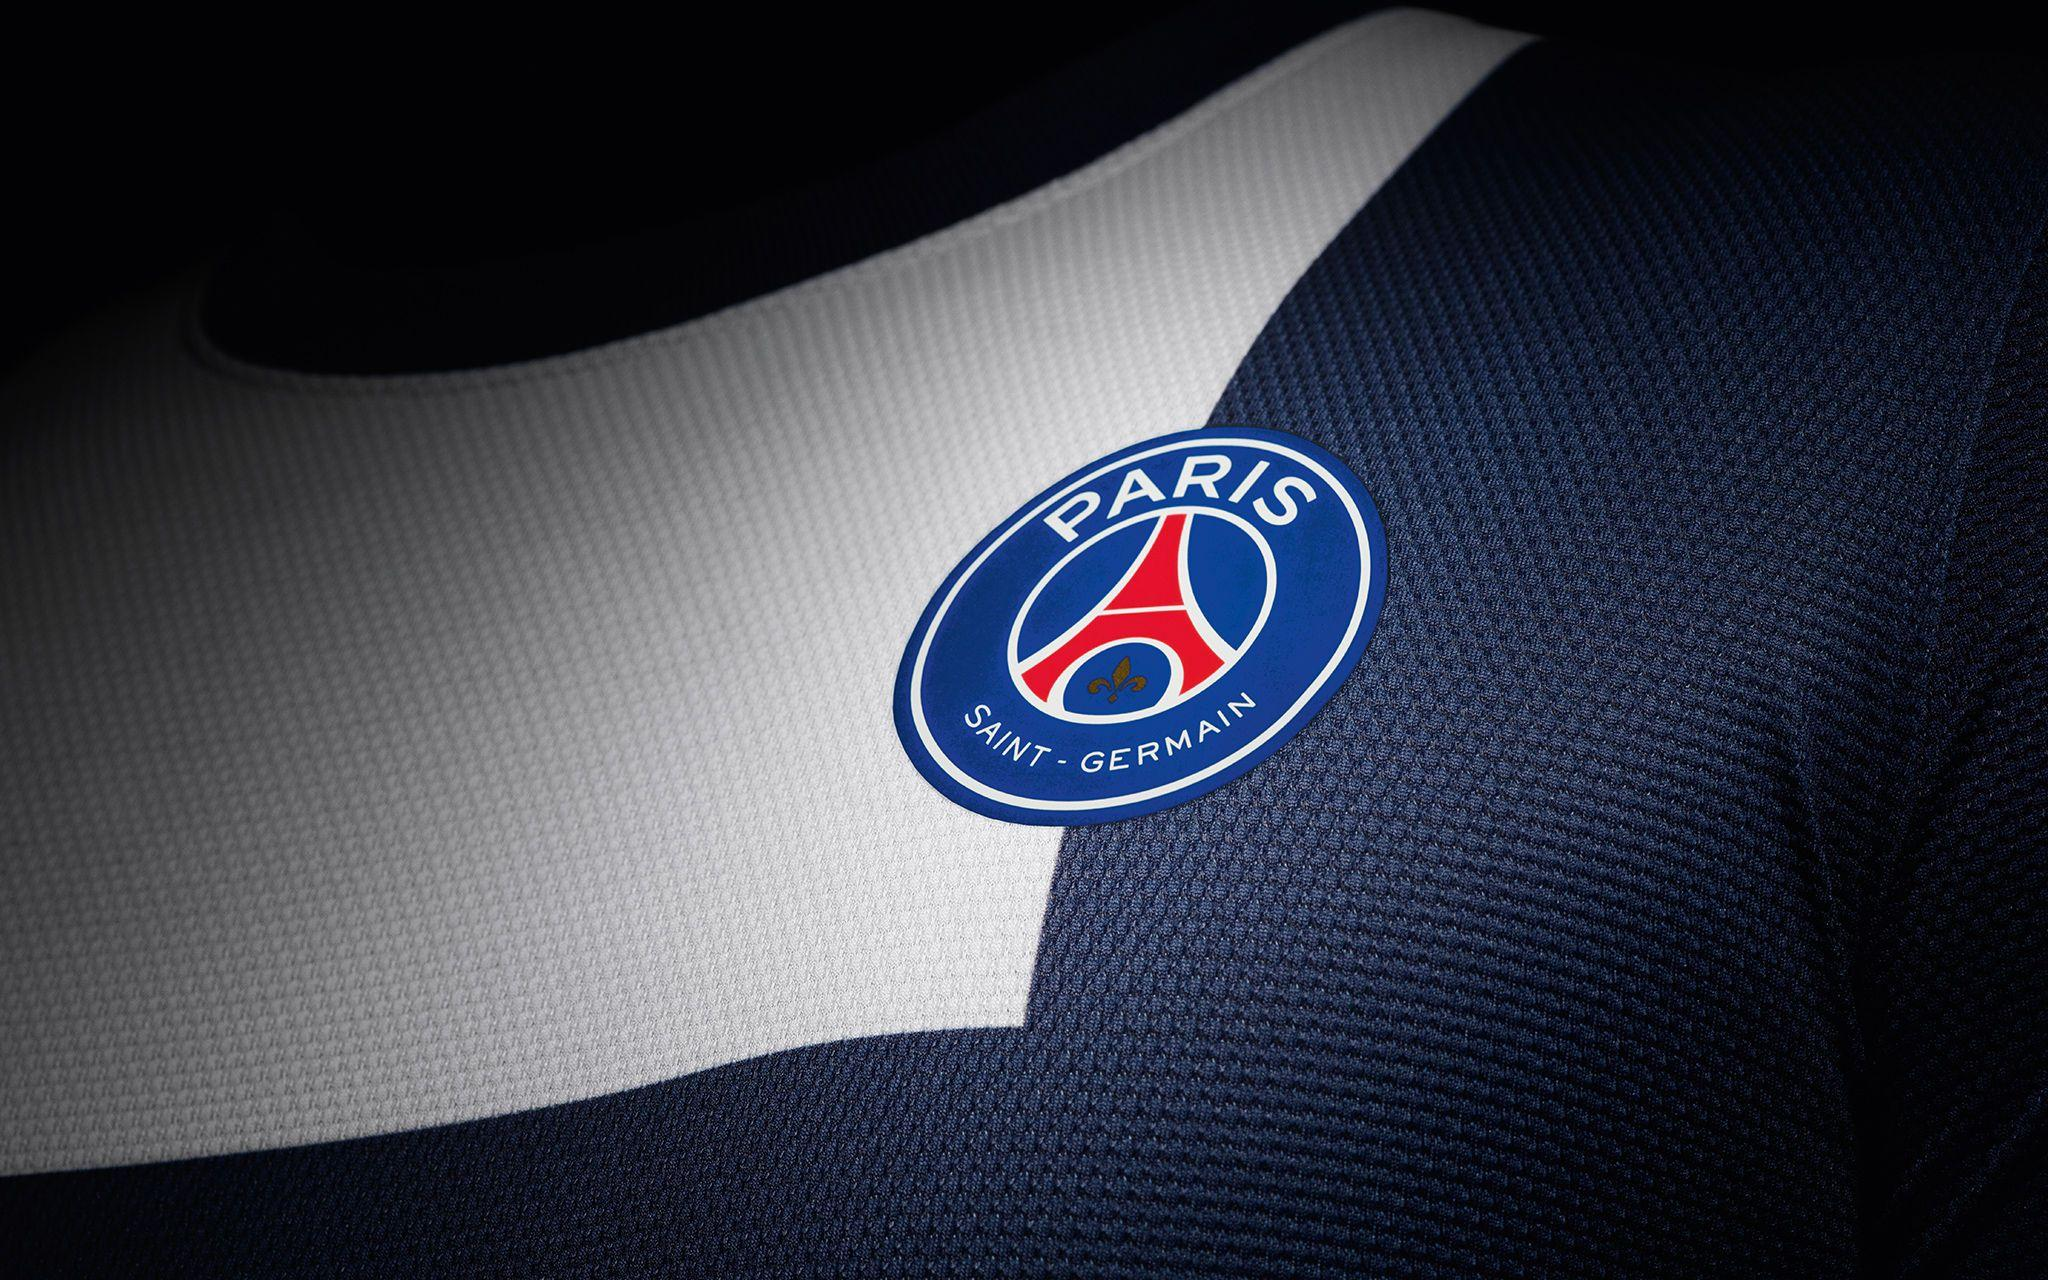 Fonds d'écran Paris Saint Germain Logo - MaximumWallHD